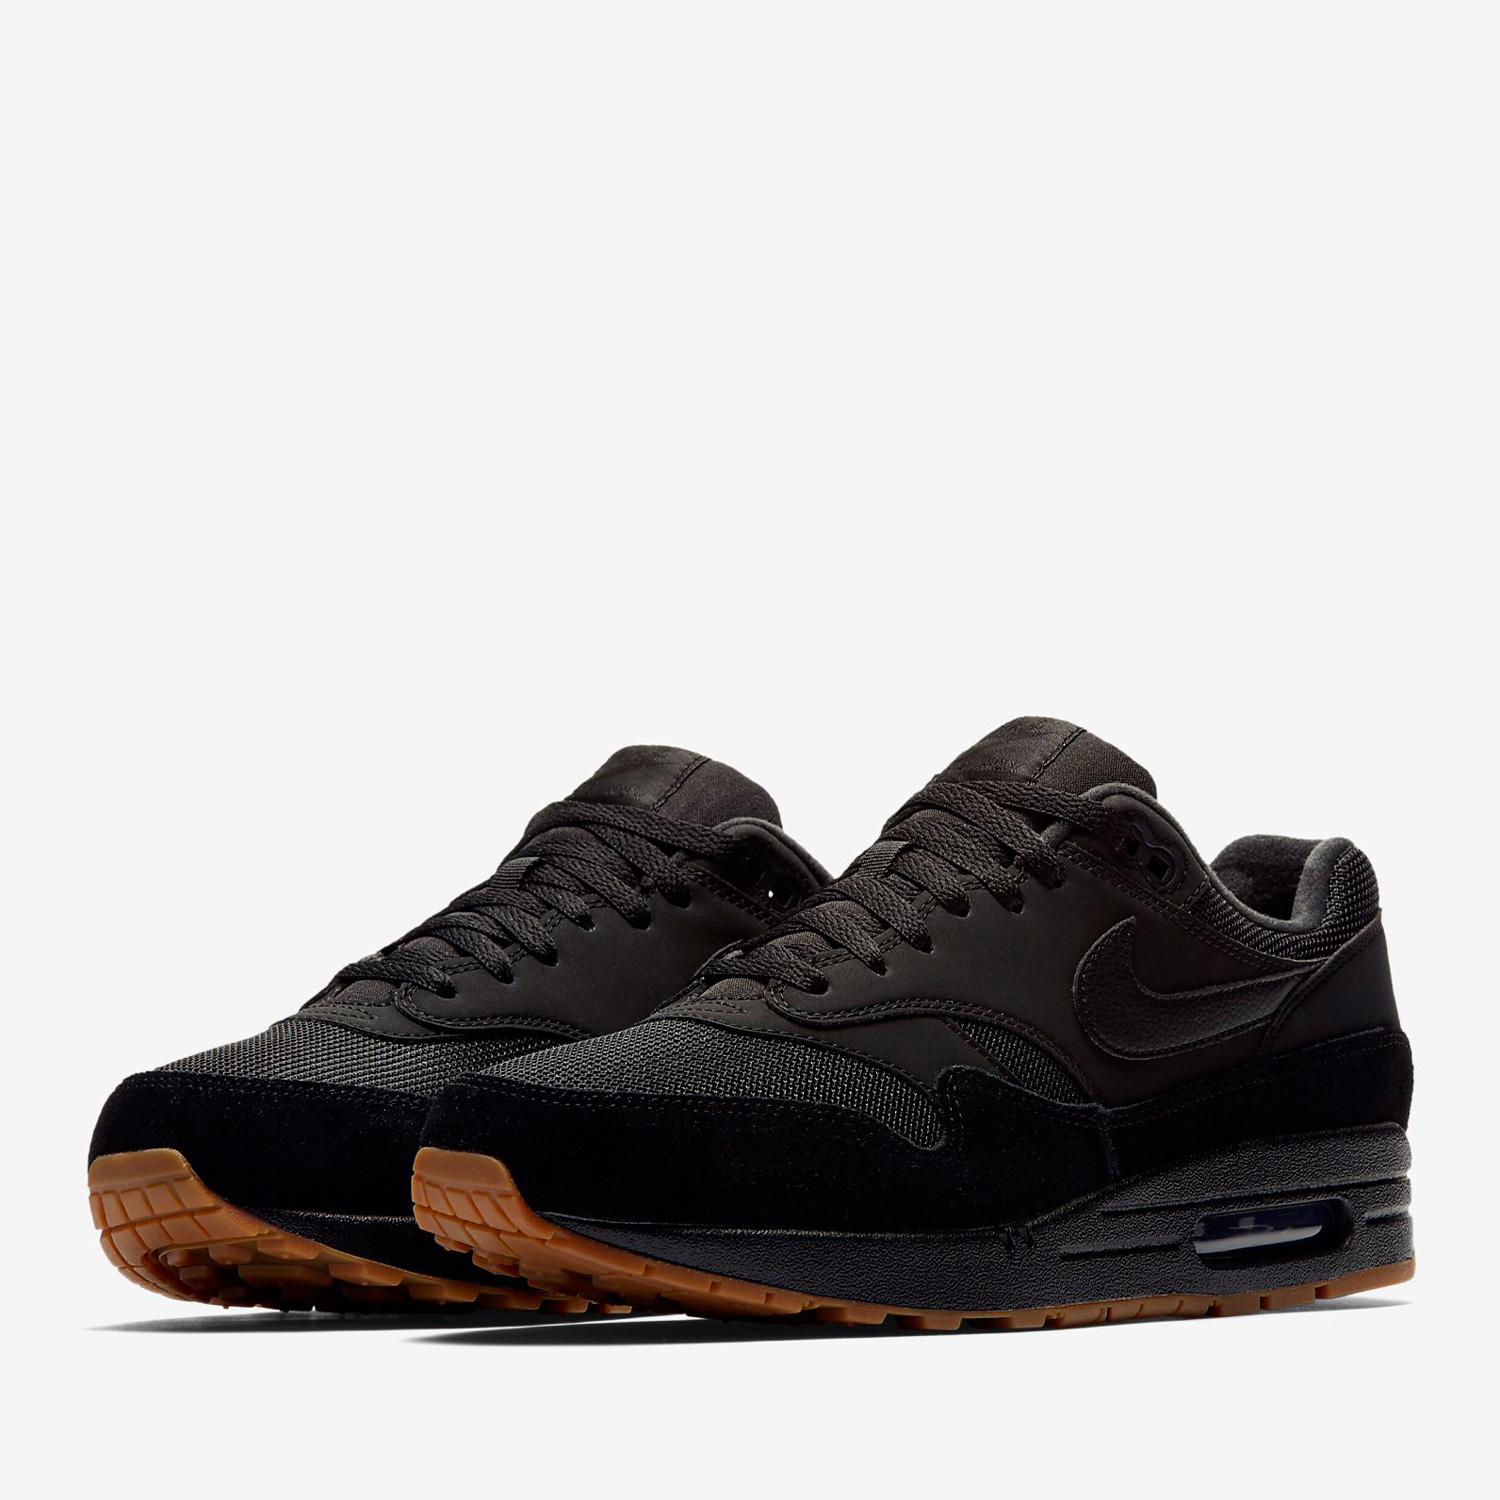 new product 4ed1d 73d29 Air Max 1 Gum Pack